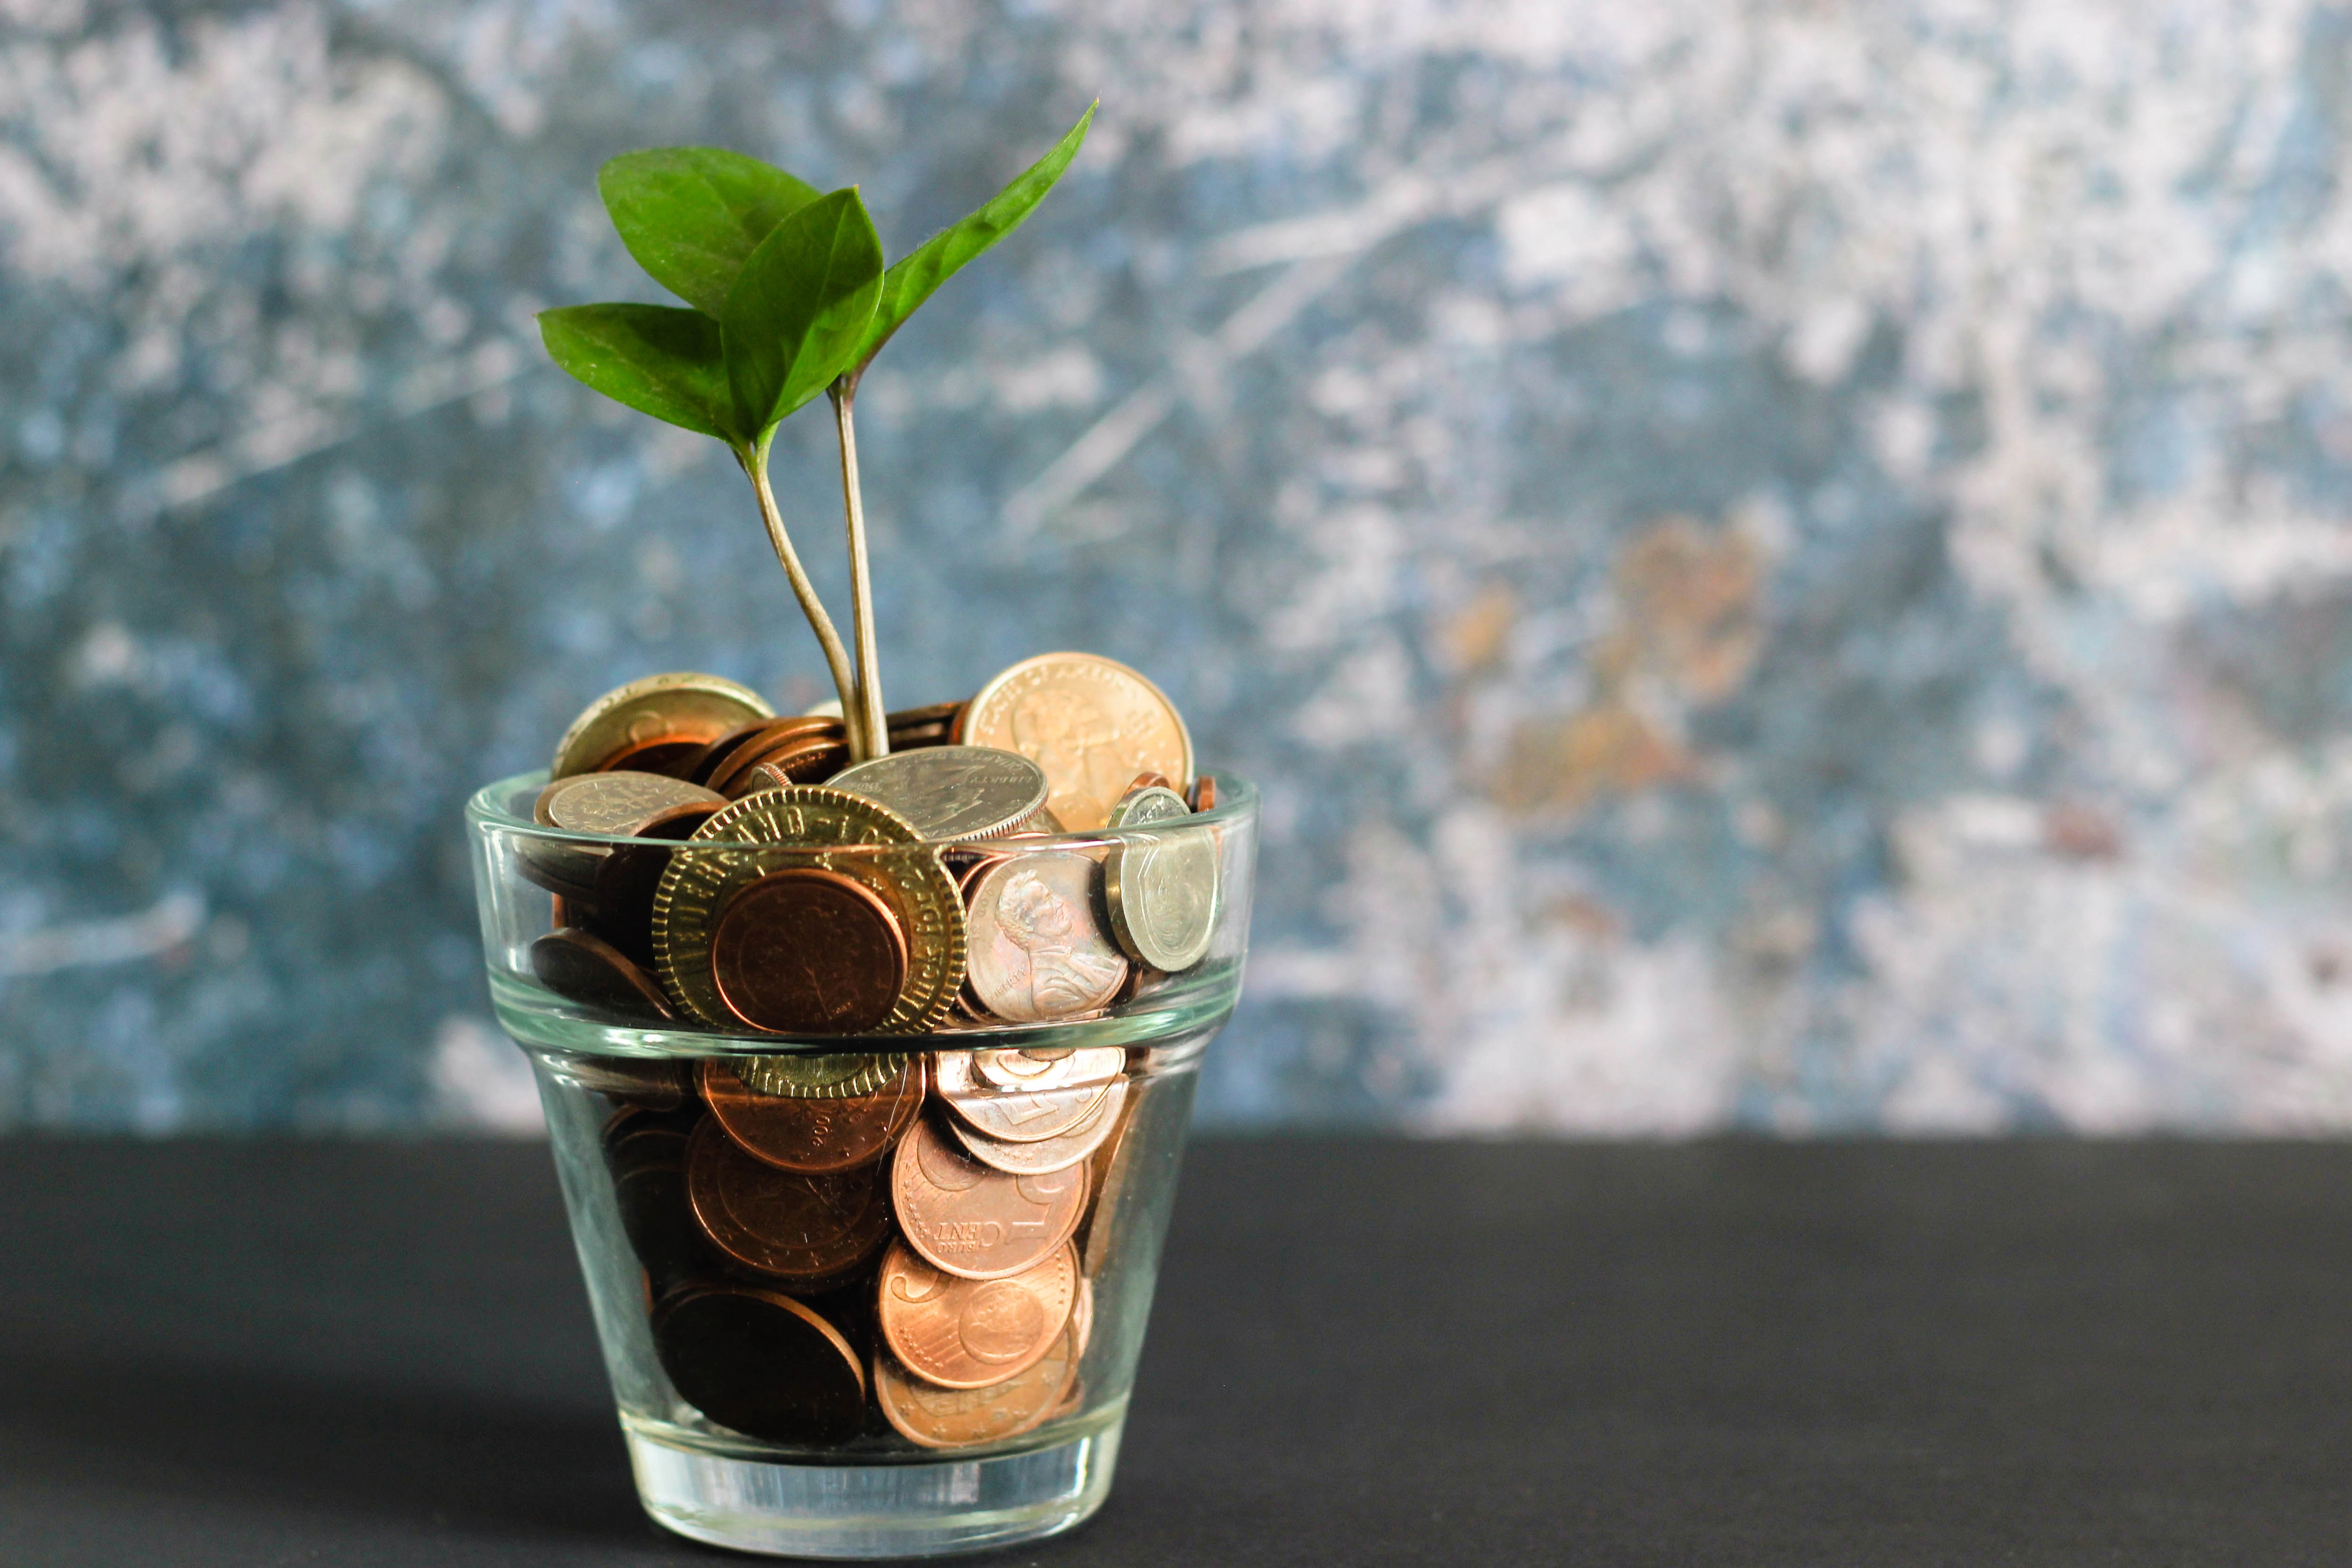 Coins in a jar with a plant growing out of it.